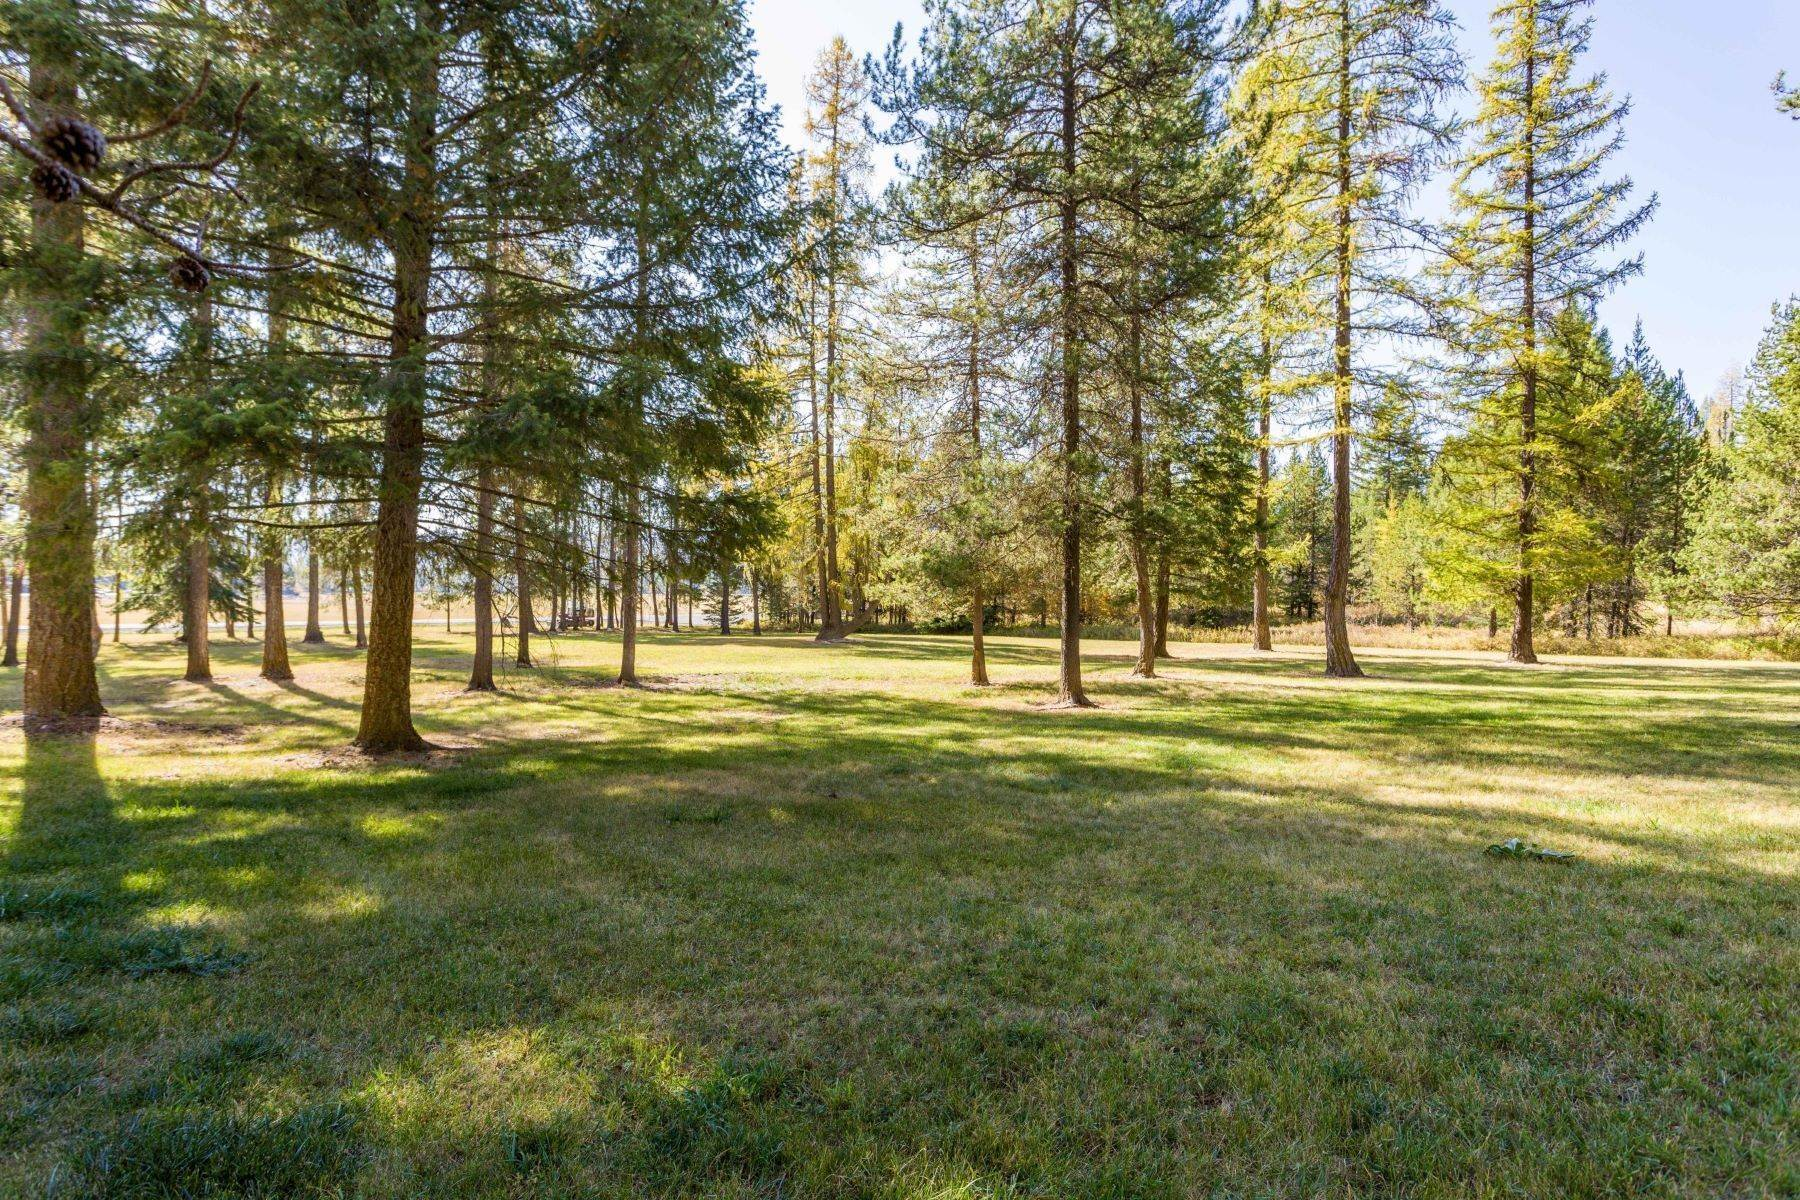 18. Land for Sale at Northwest Montana Forest, Meadows and Ponds 295 Garland Lane Whitefish, Montana 59937 United States